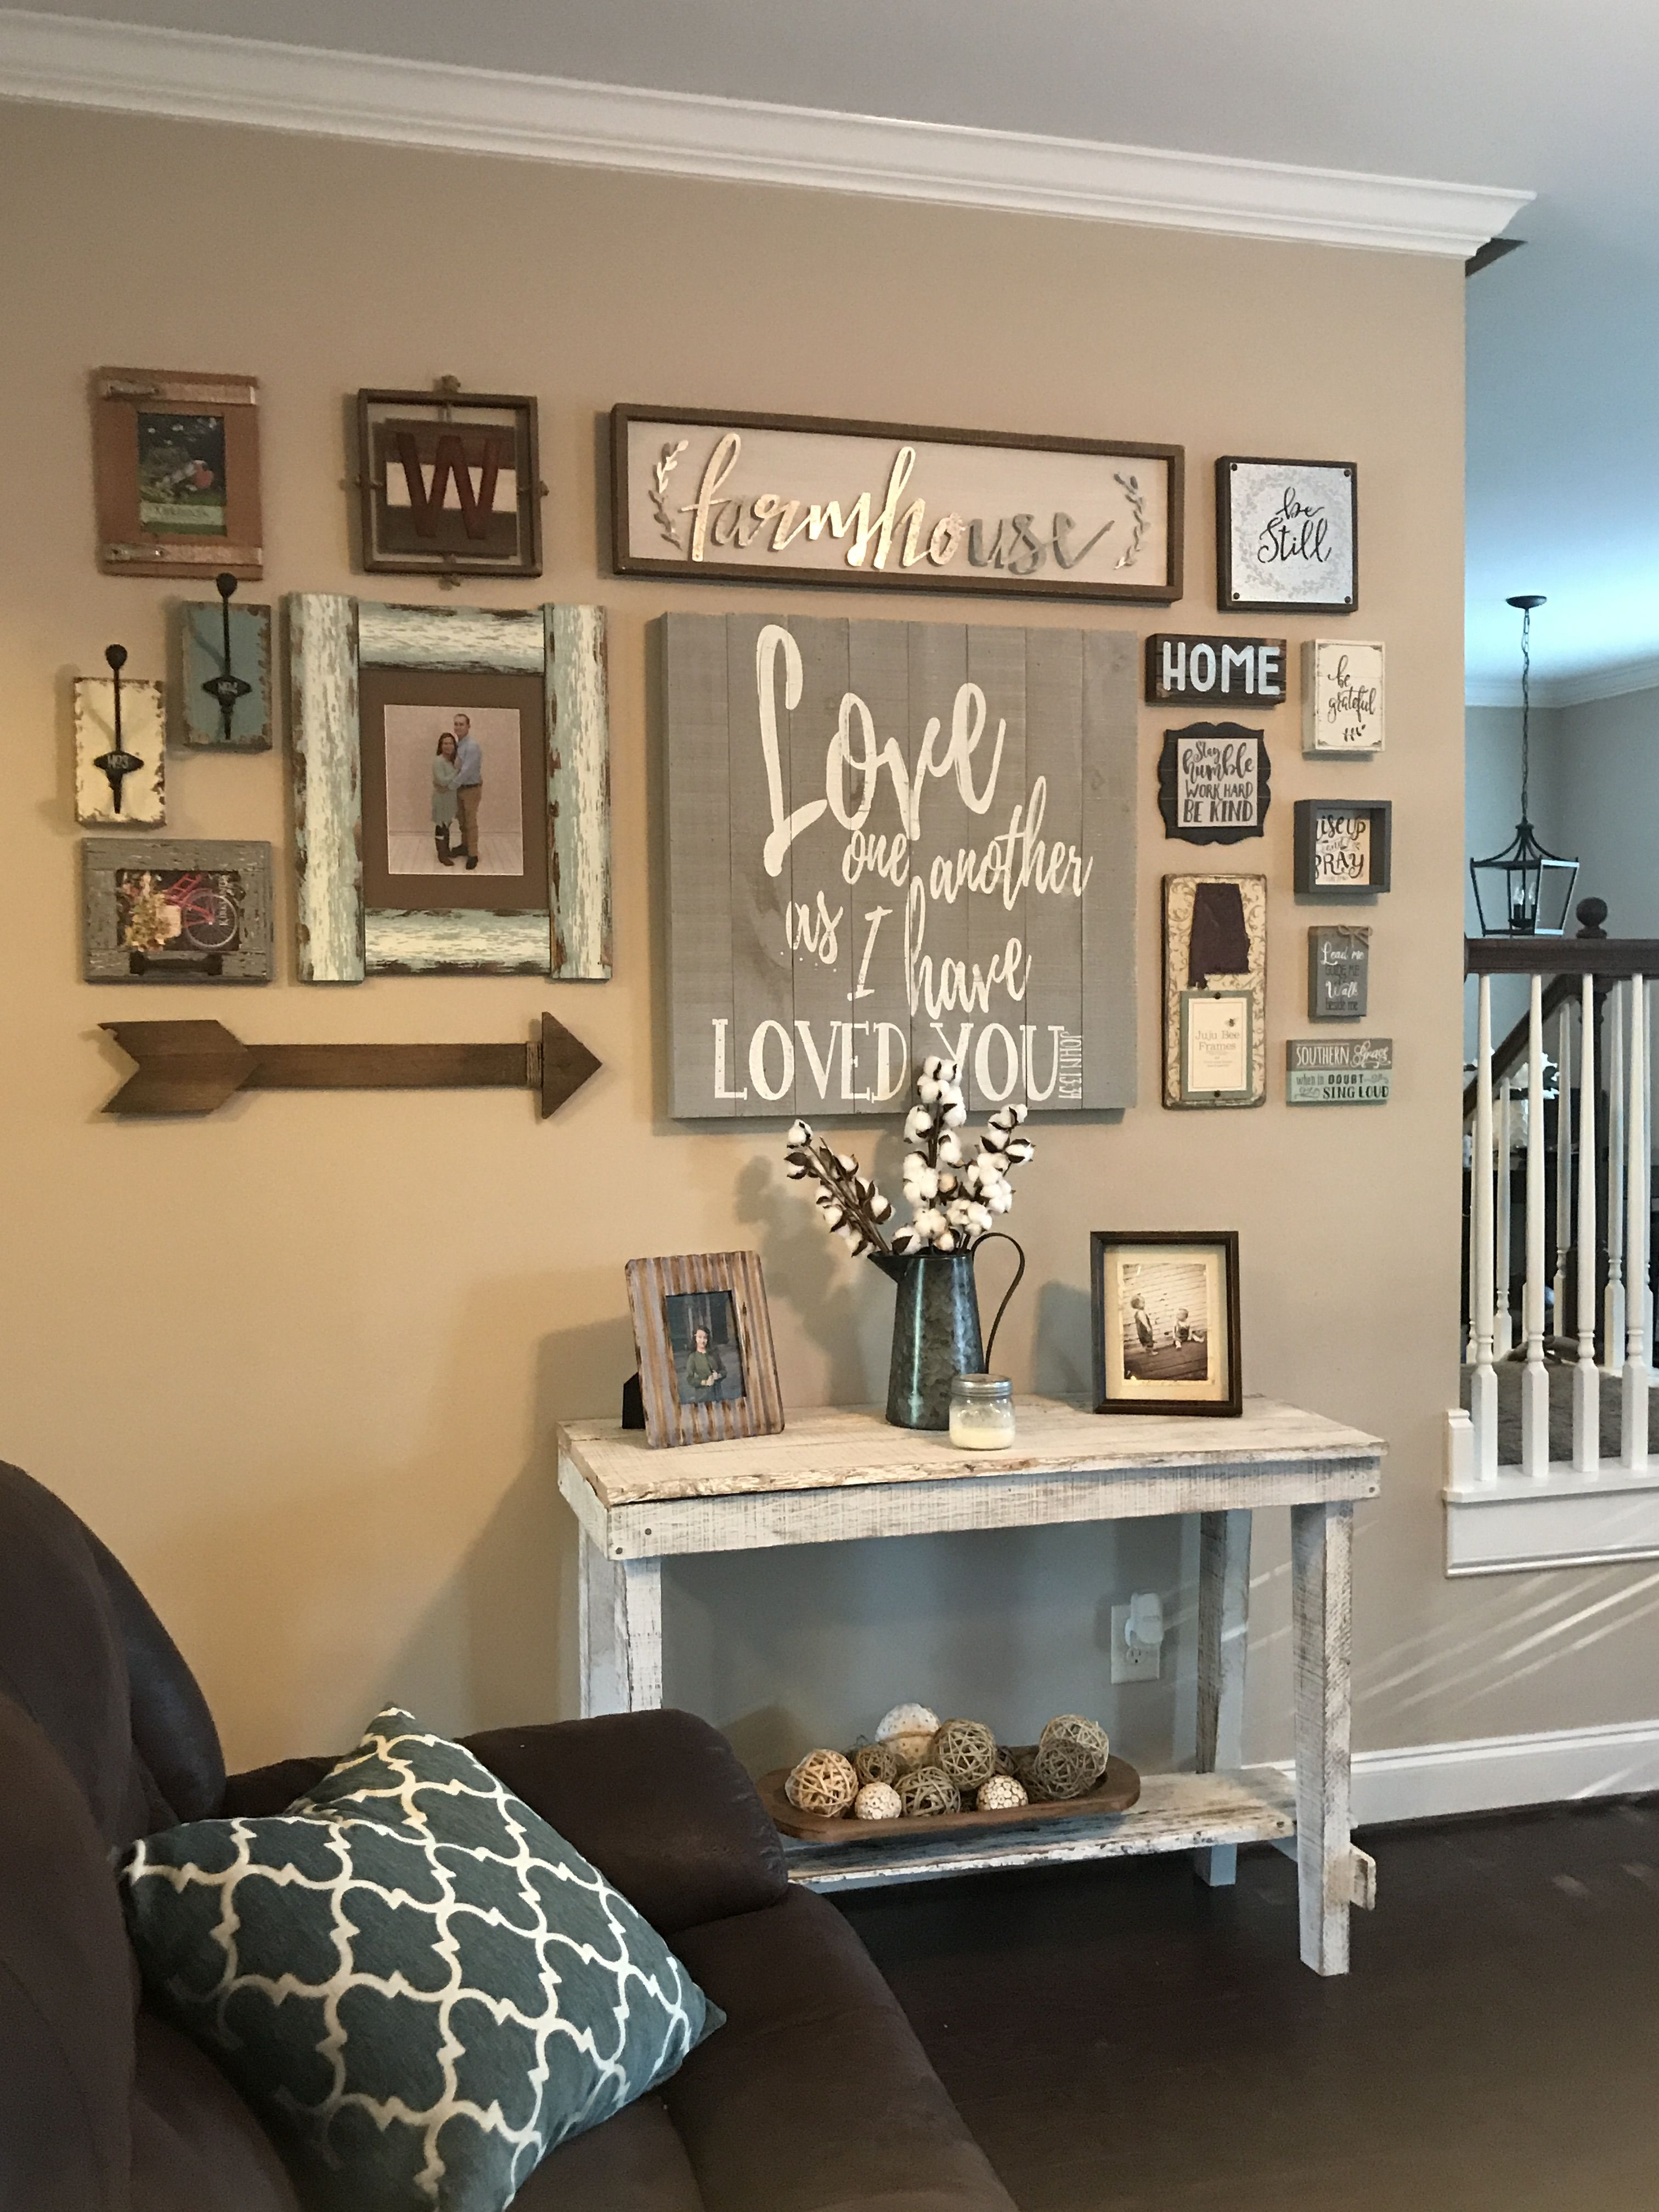 New collage wall! | Ranch house decor